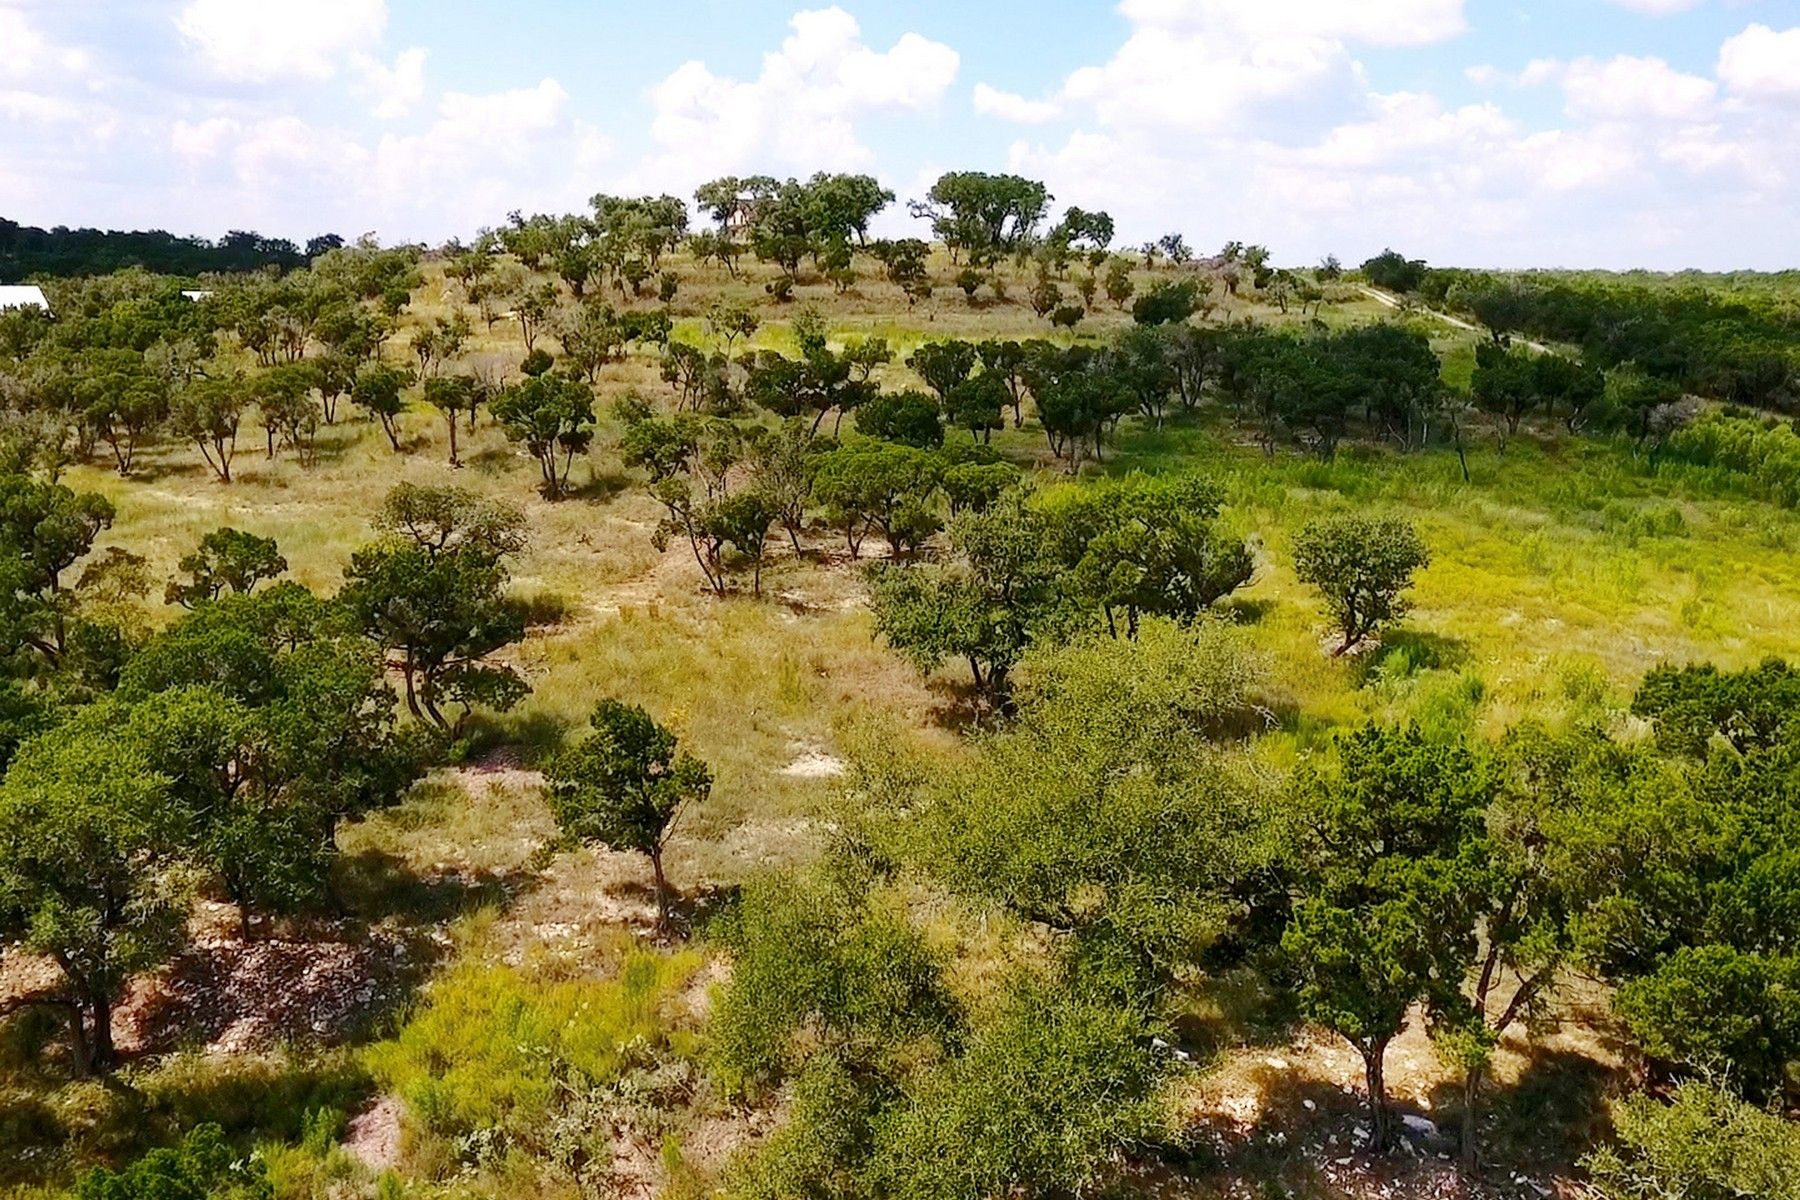 Terreno por un Venta en Unique Land Value Minutes to Austin Lot 10 Old Baldy Trl Dripping Springs, Texas 78620 Estados Unidos